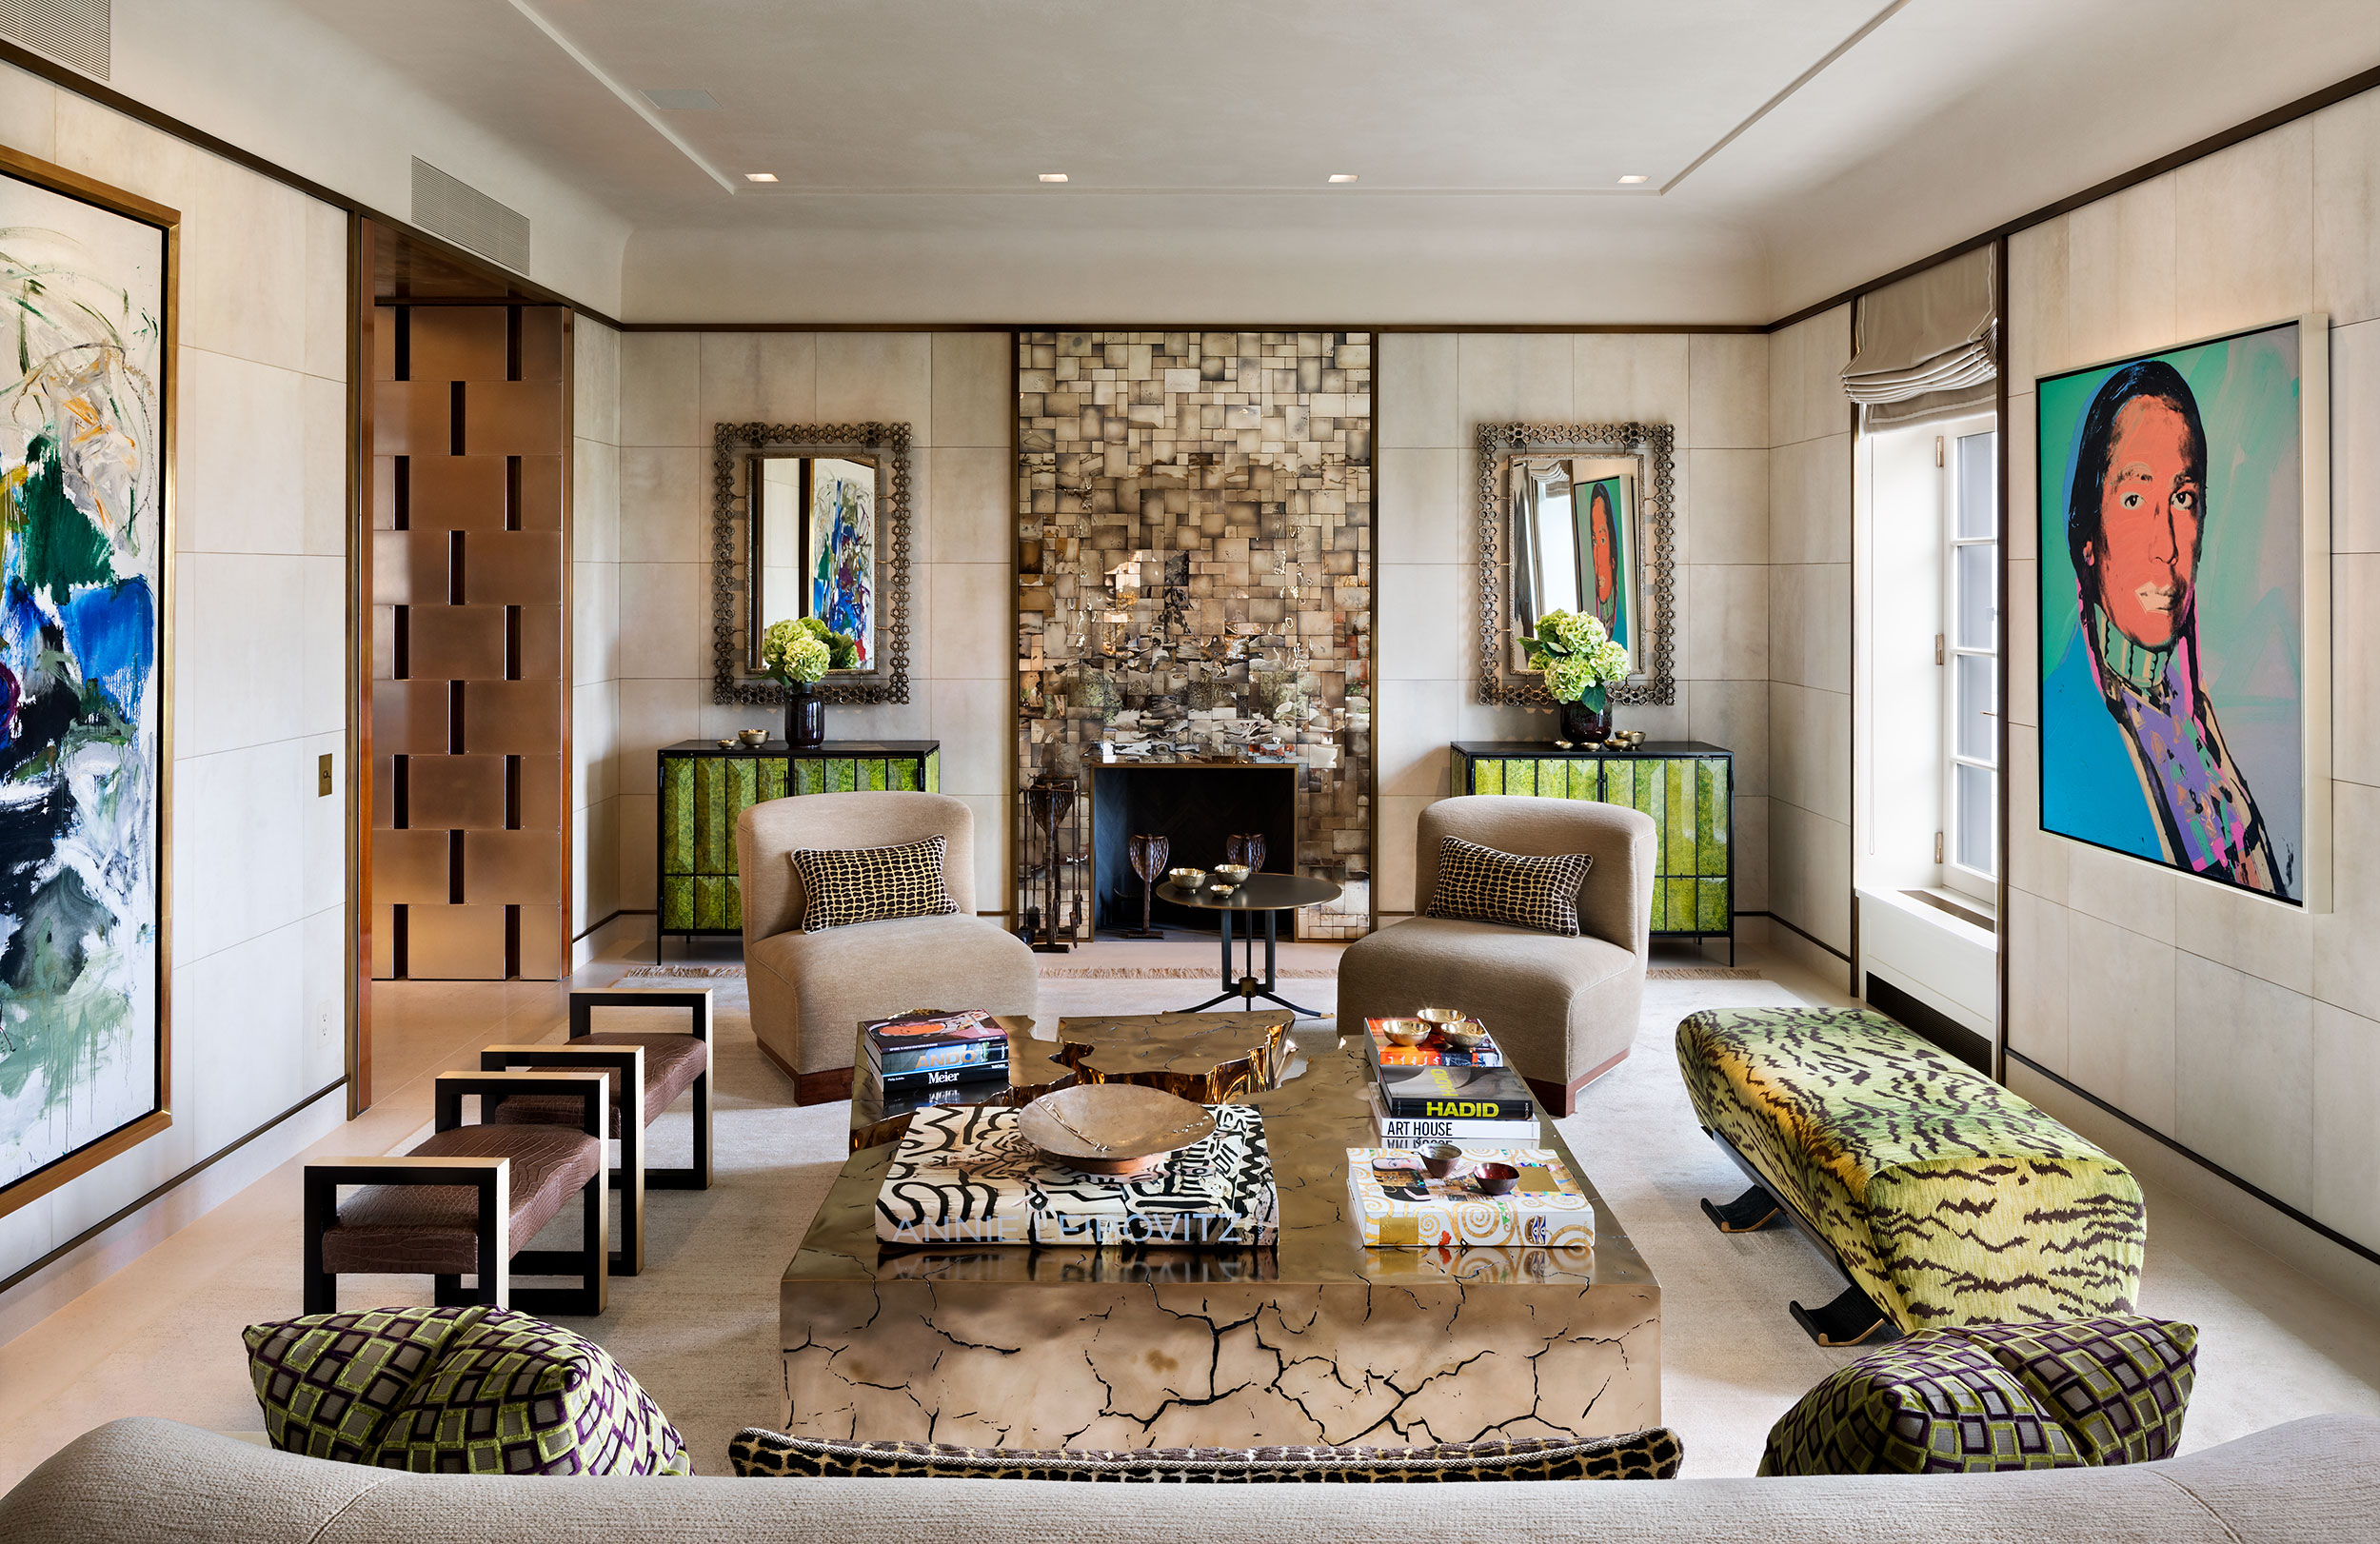 Galerie Magazine, Upper East Side, New York City, Residential Decor